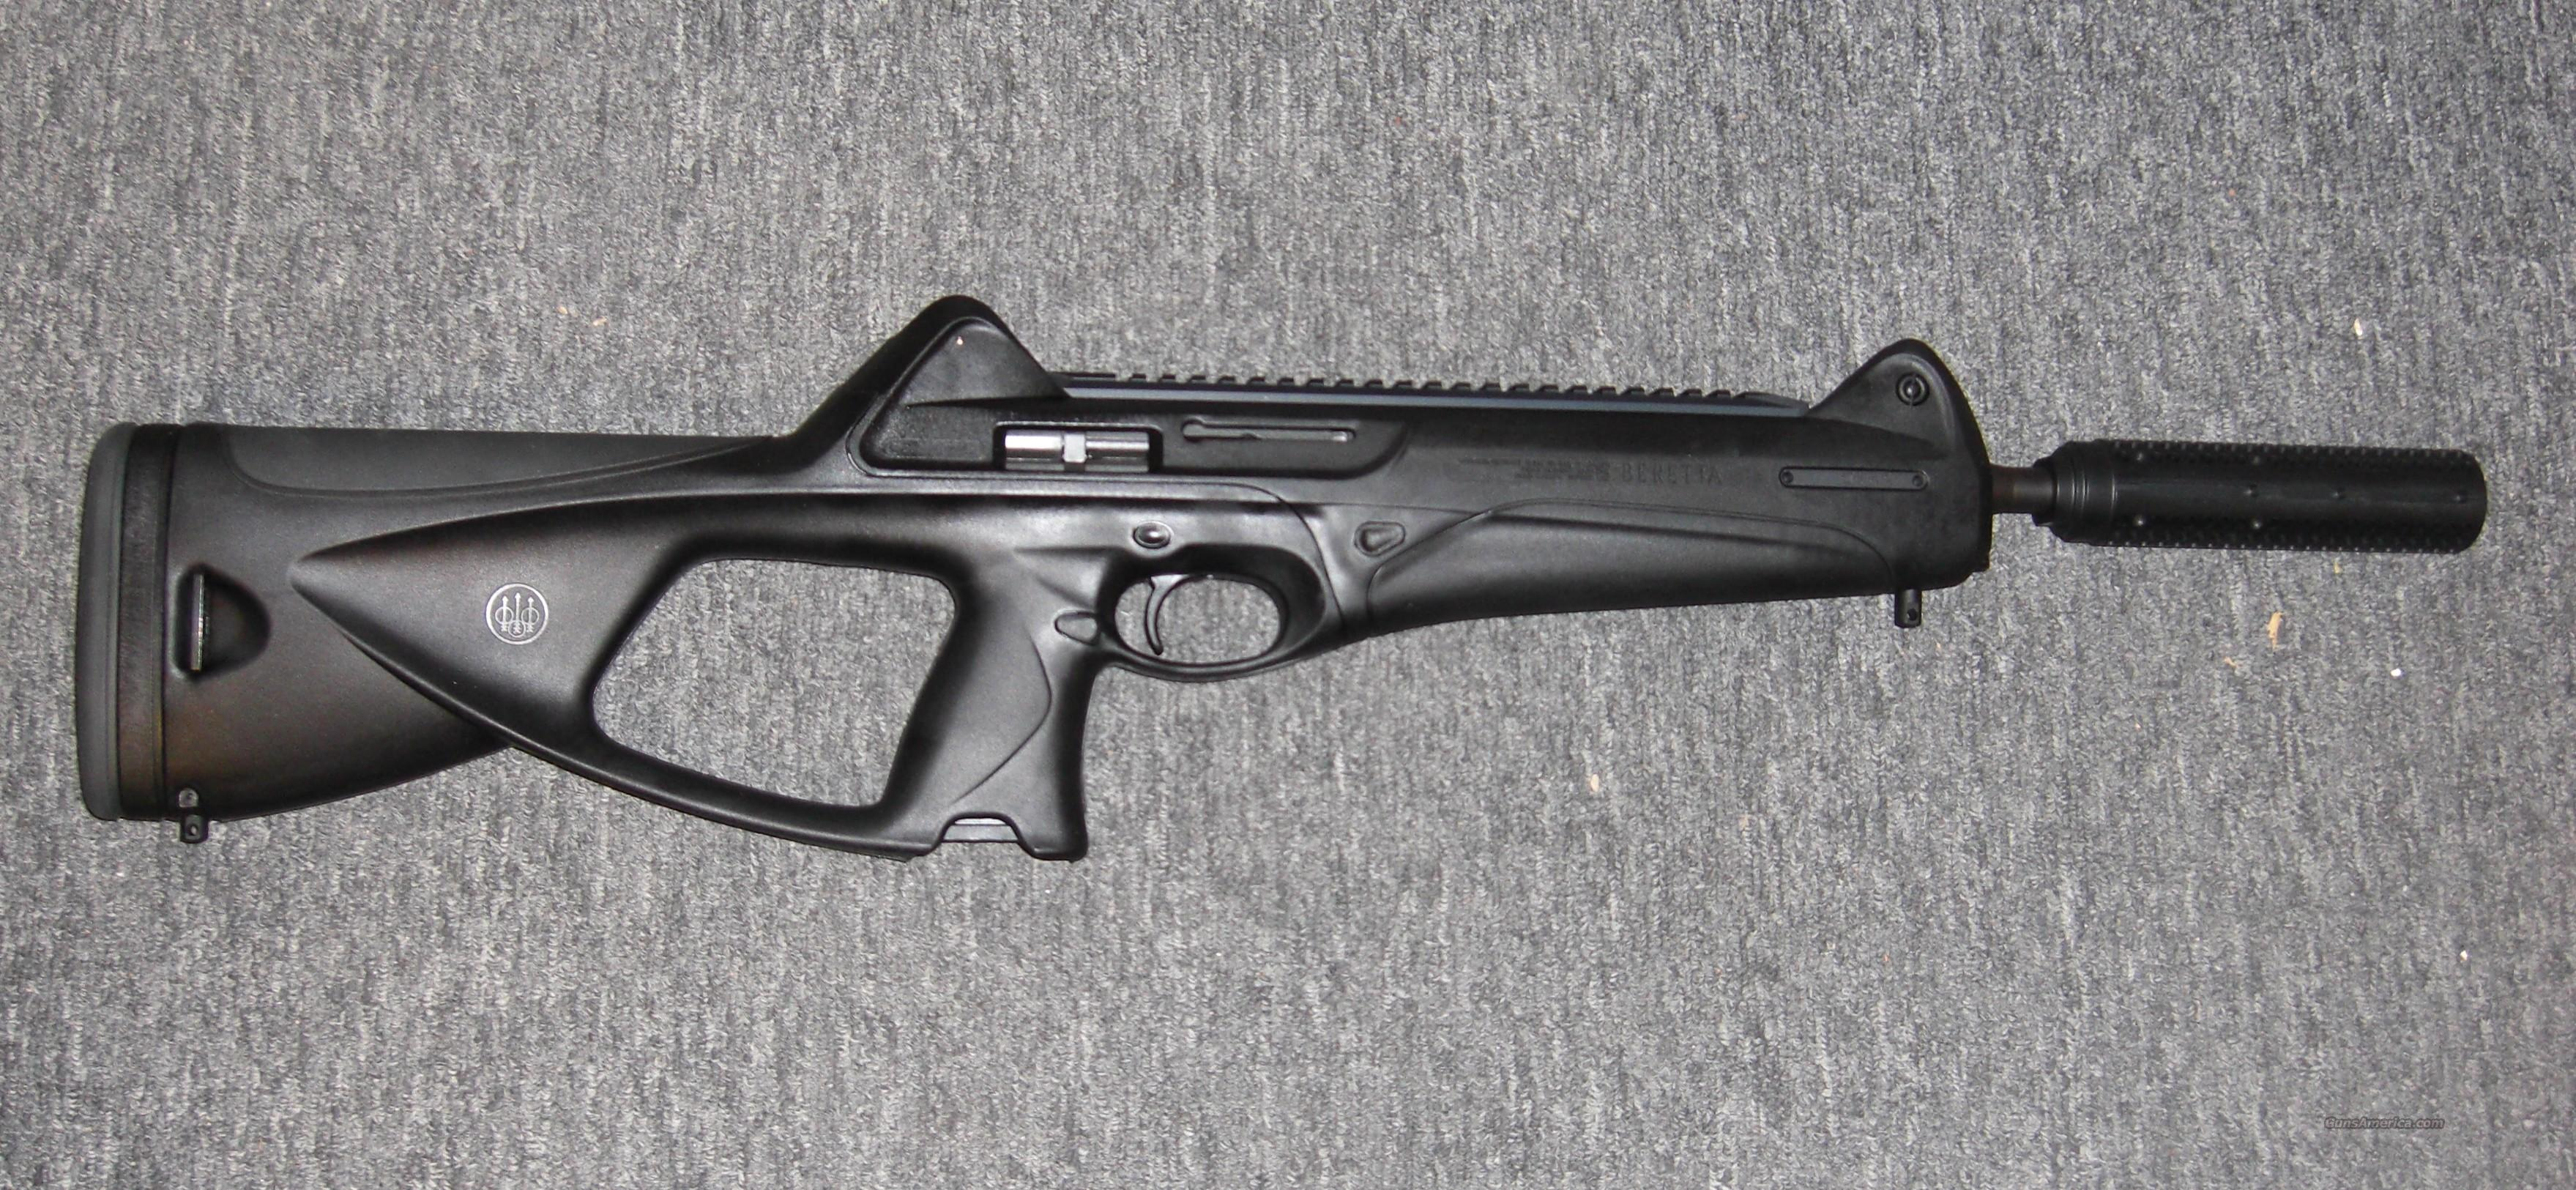 CX4 Storm .45acp  w/fake suppressor  Guns > Rifles > Beretta Rifles > Storm